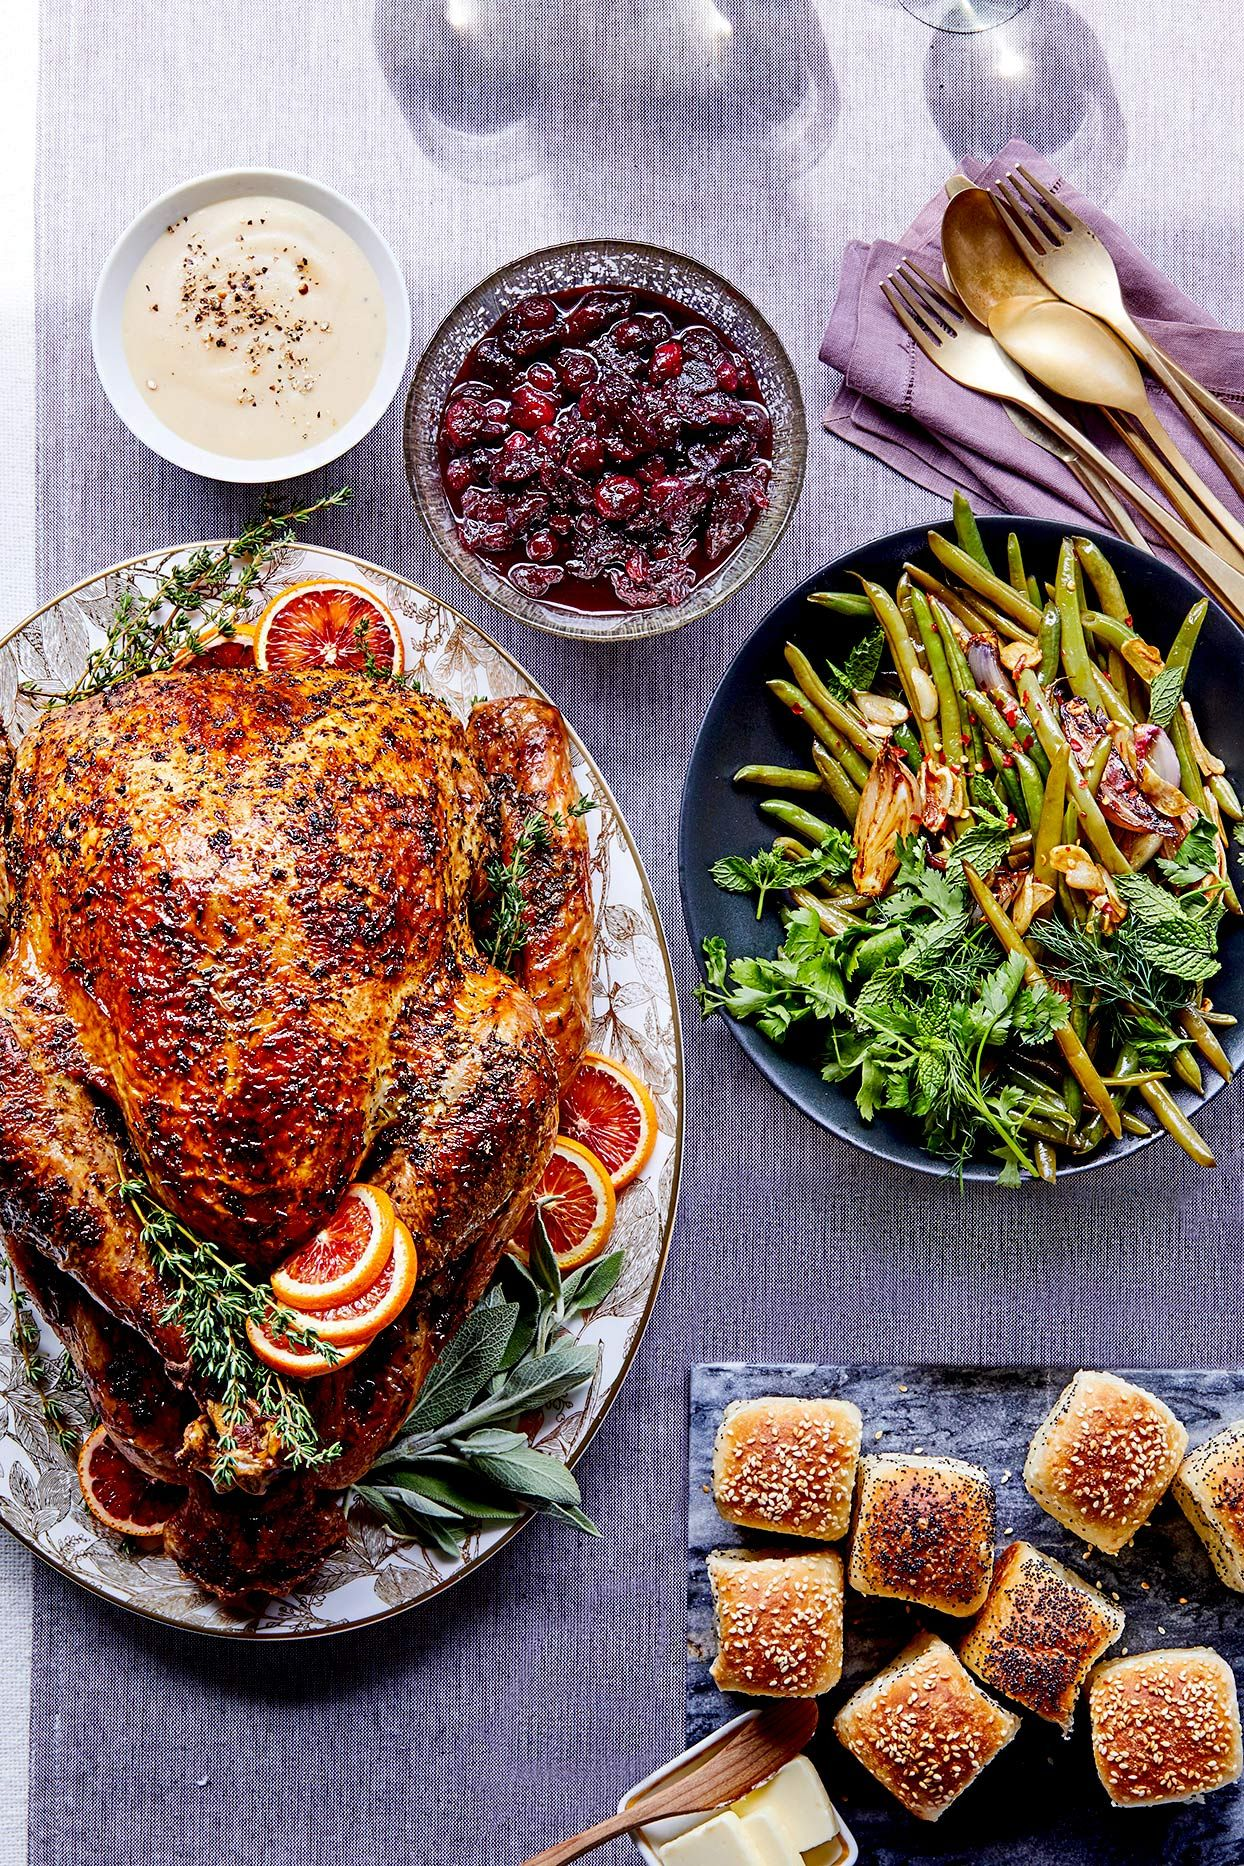 26 Thanksgiving Menu Ideas From Classic To Soul Food More In 2020 Thanksgiving Recipes Side Dishes Veggies Thanksgiving Recipes Side Dishes Thanksgiving Dinner